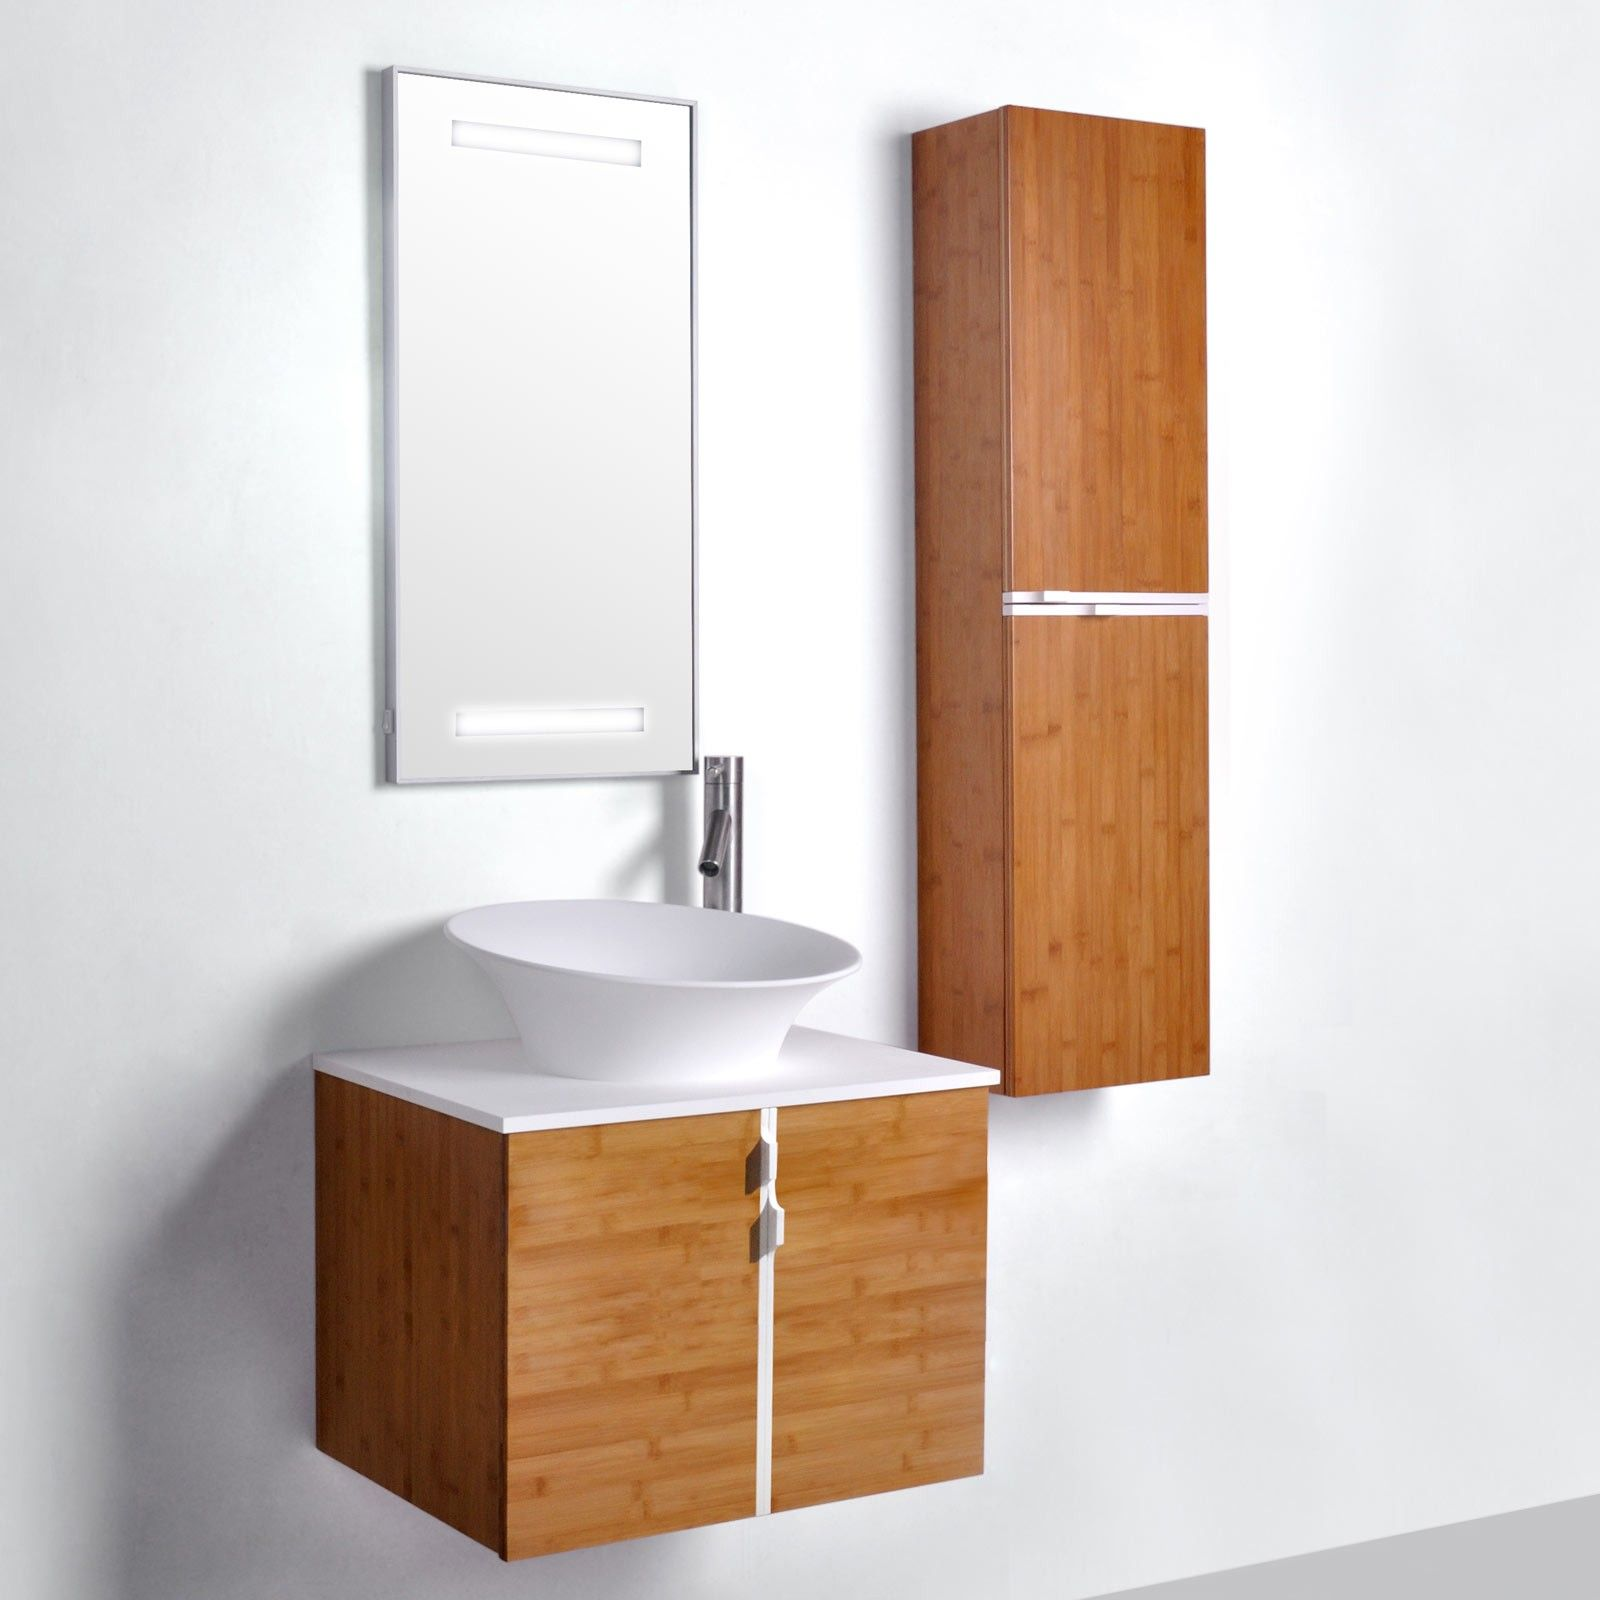 Merveilleux Bamboo 600mm Vanity With Solid Surface Top, Wall Hung Cabinet   Blum Soft  Close